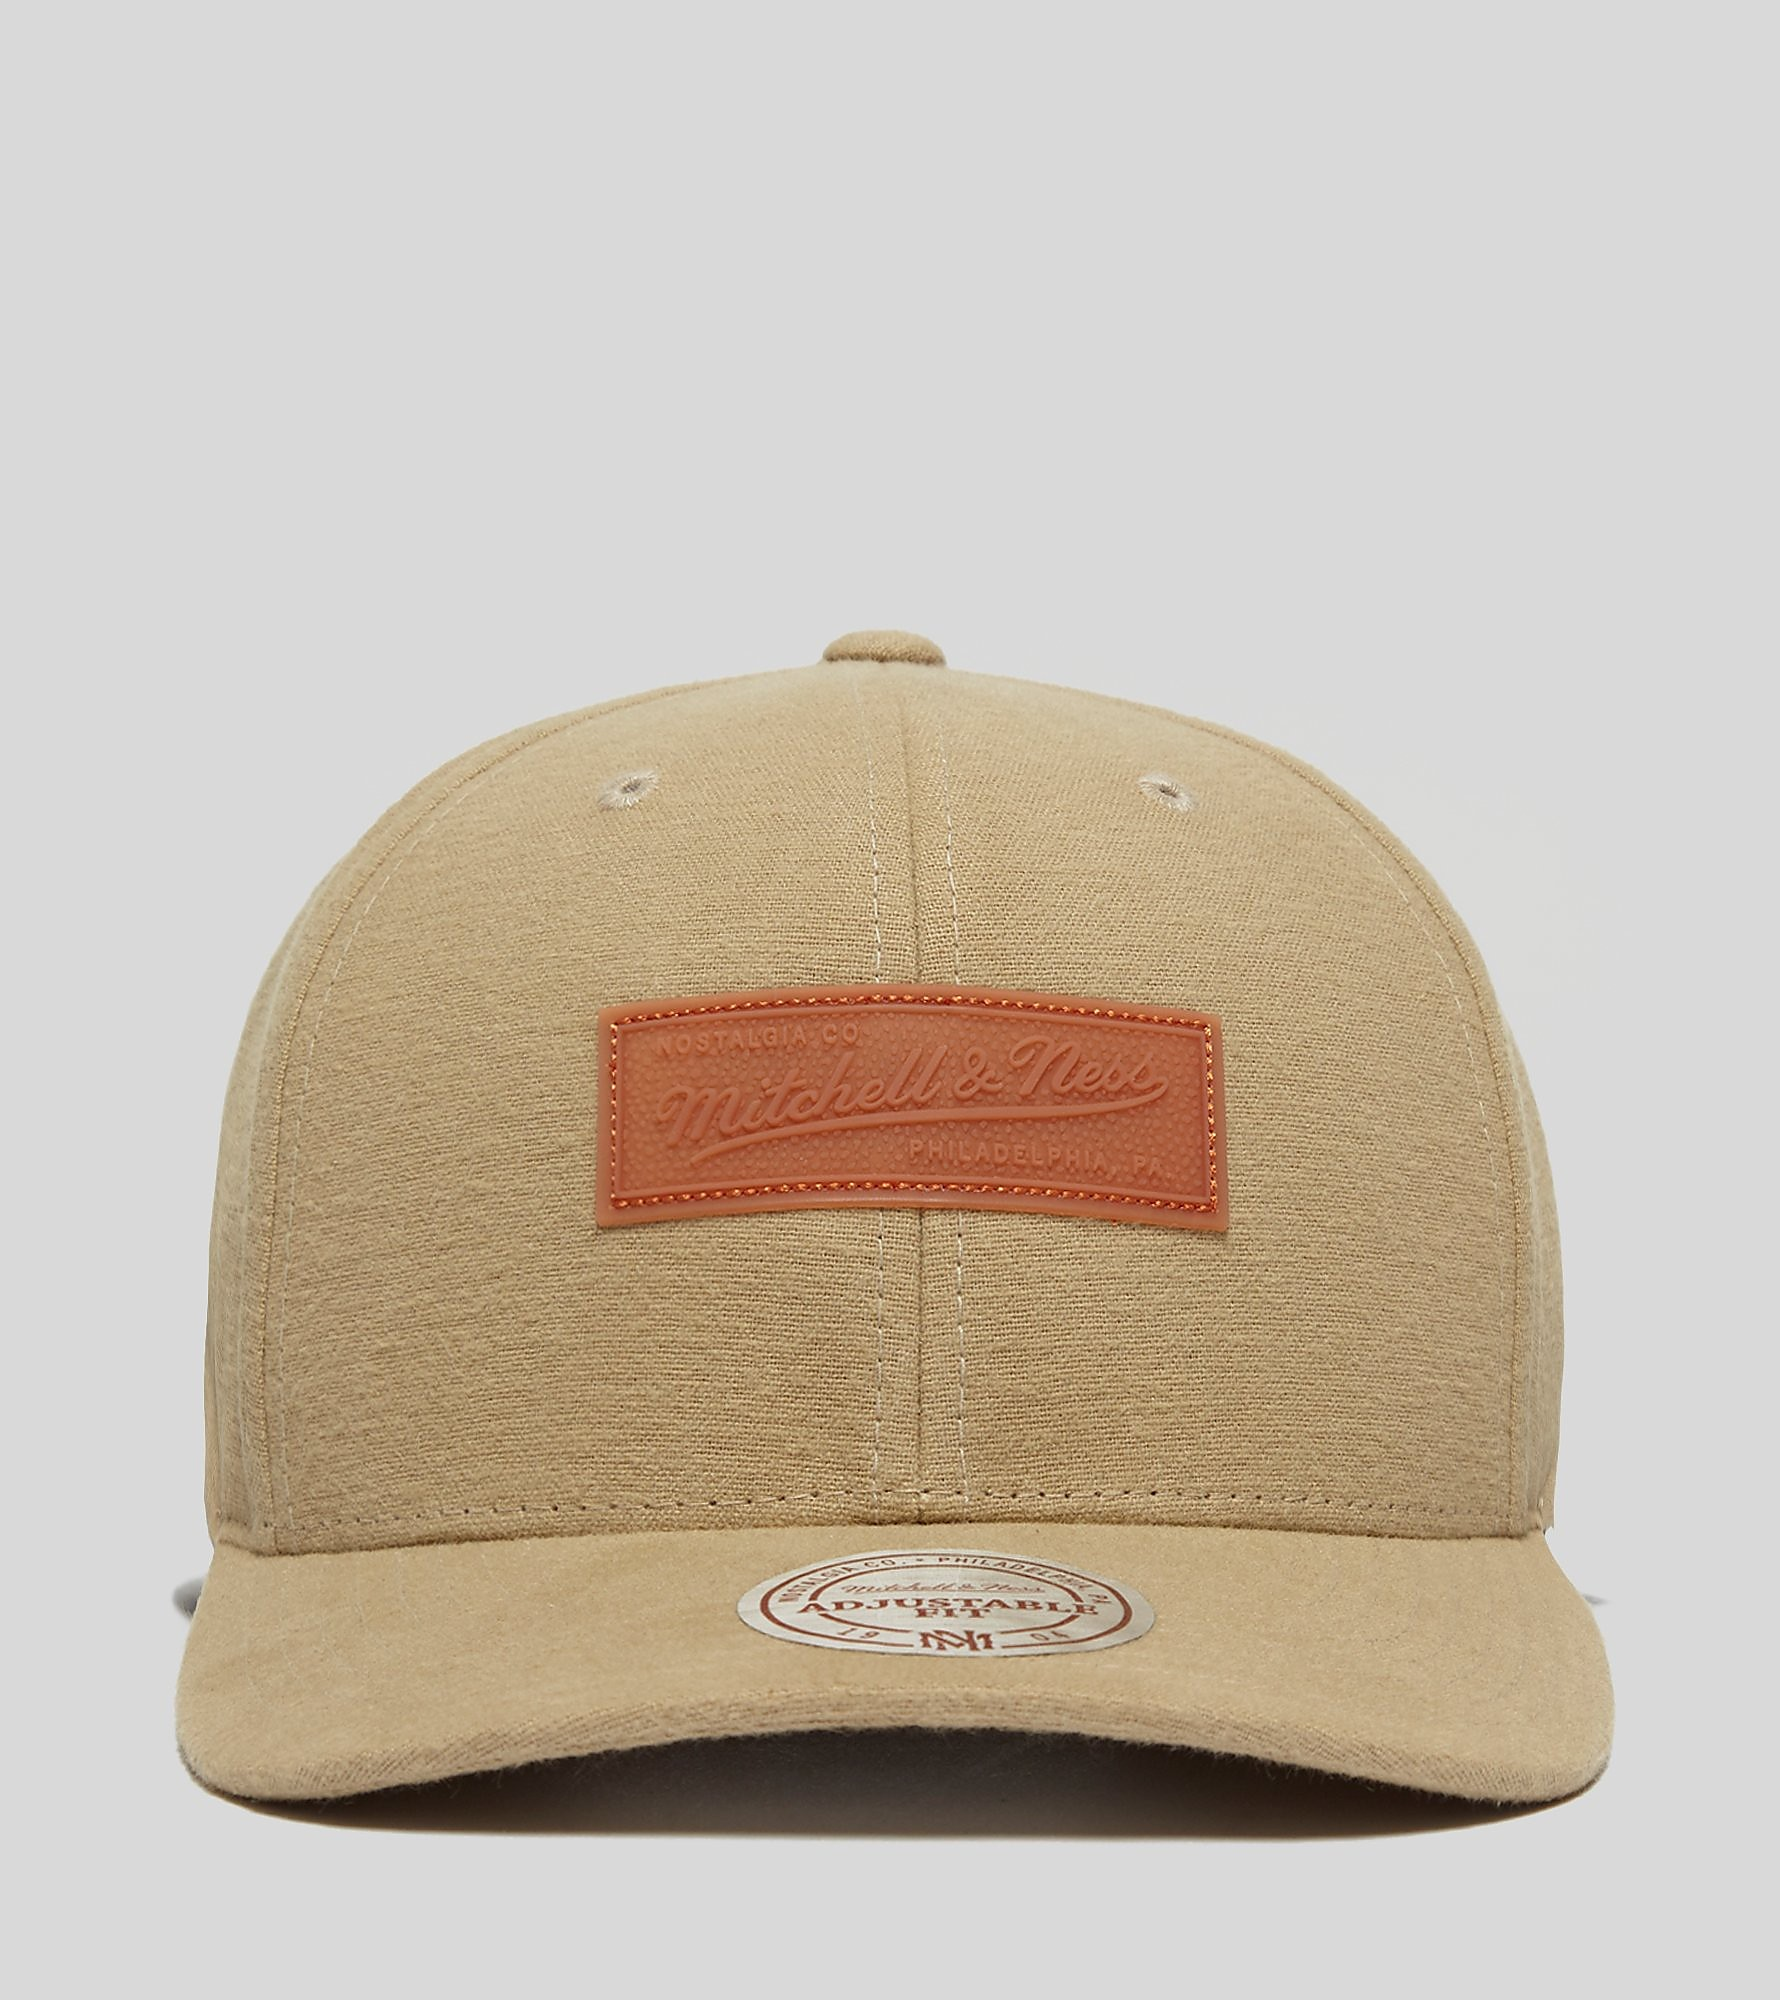 Mitchell & Ness Gum Snapback Cap - size? Exclusive